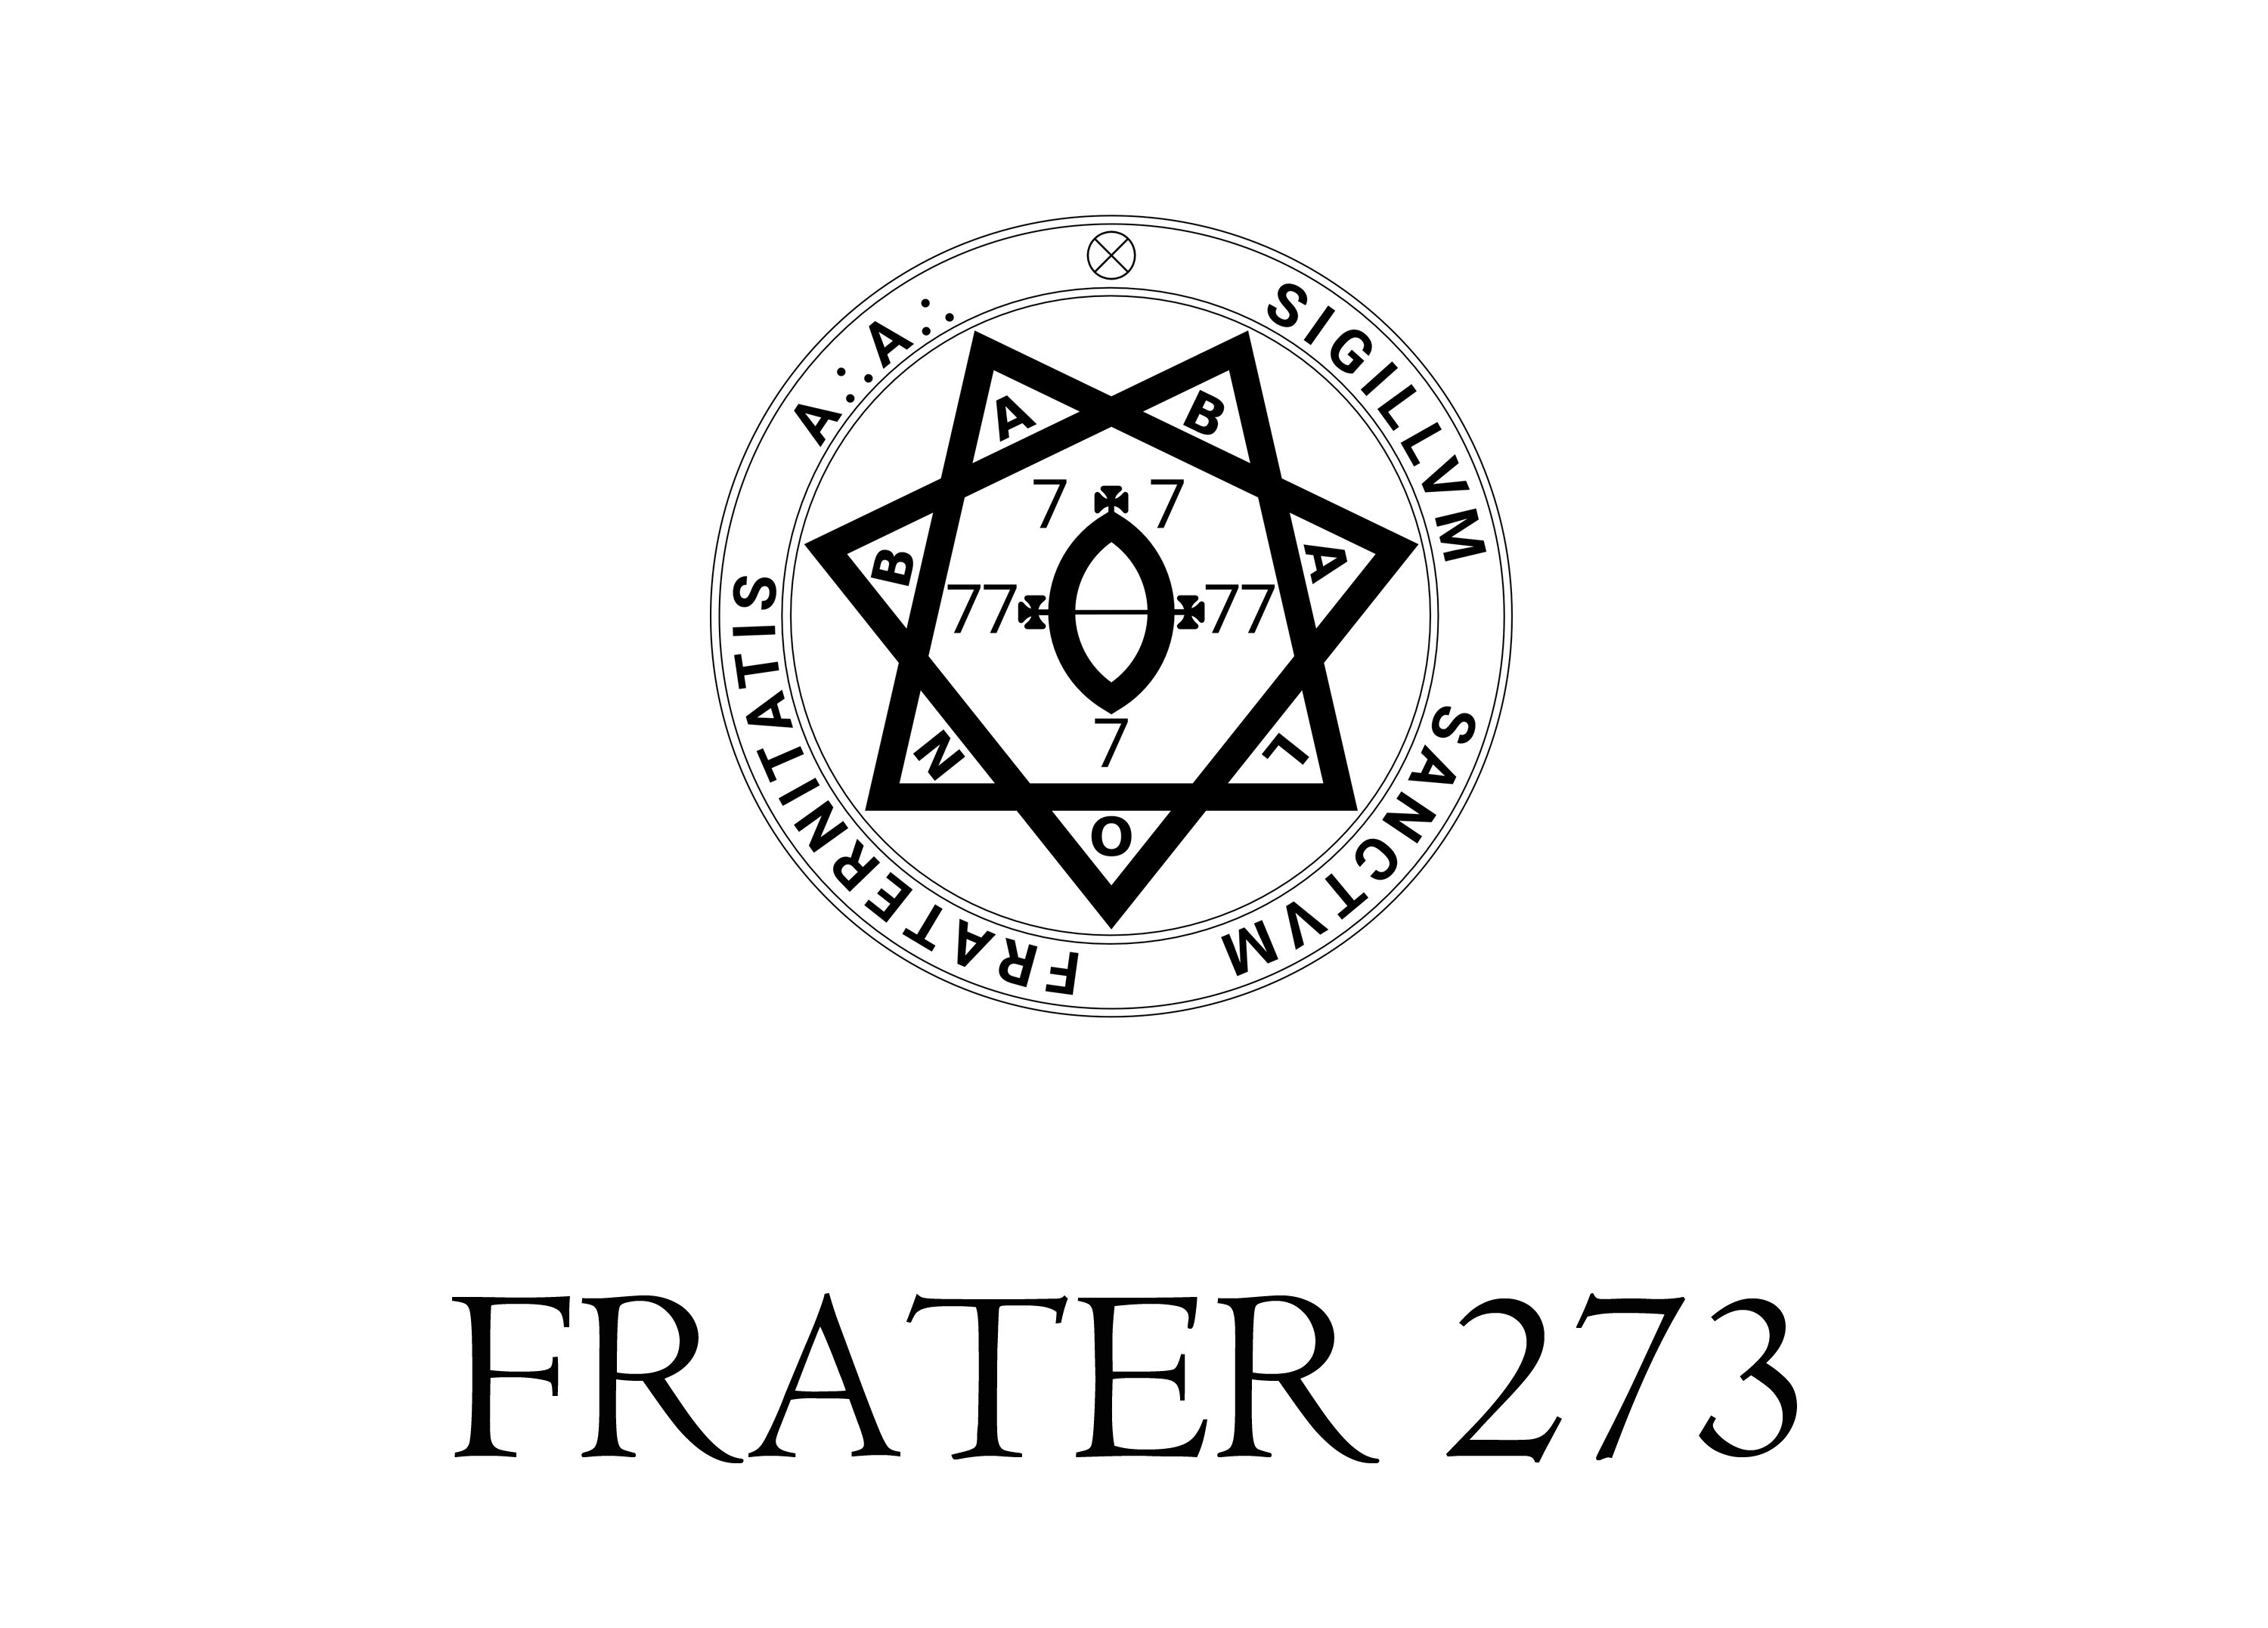 Frater 273 | Reflections on Thelema